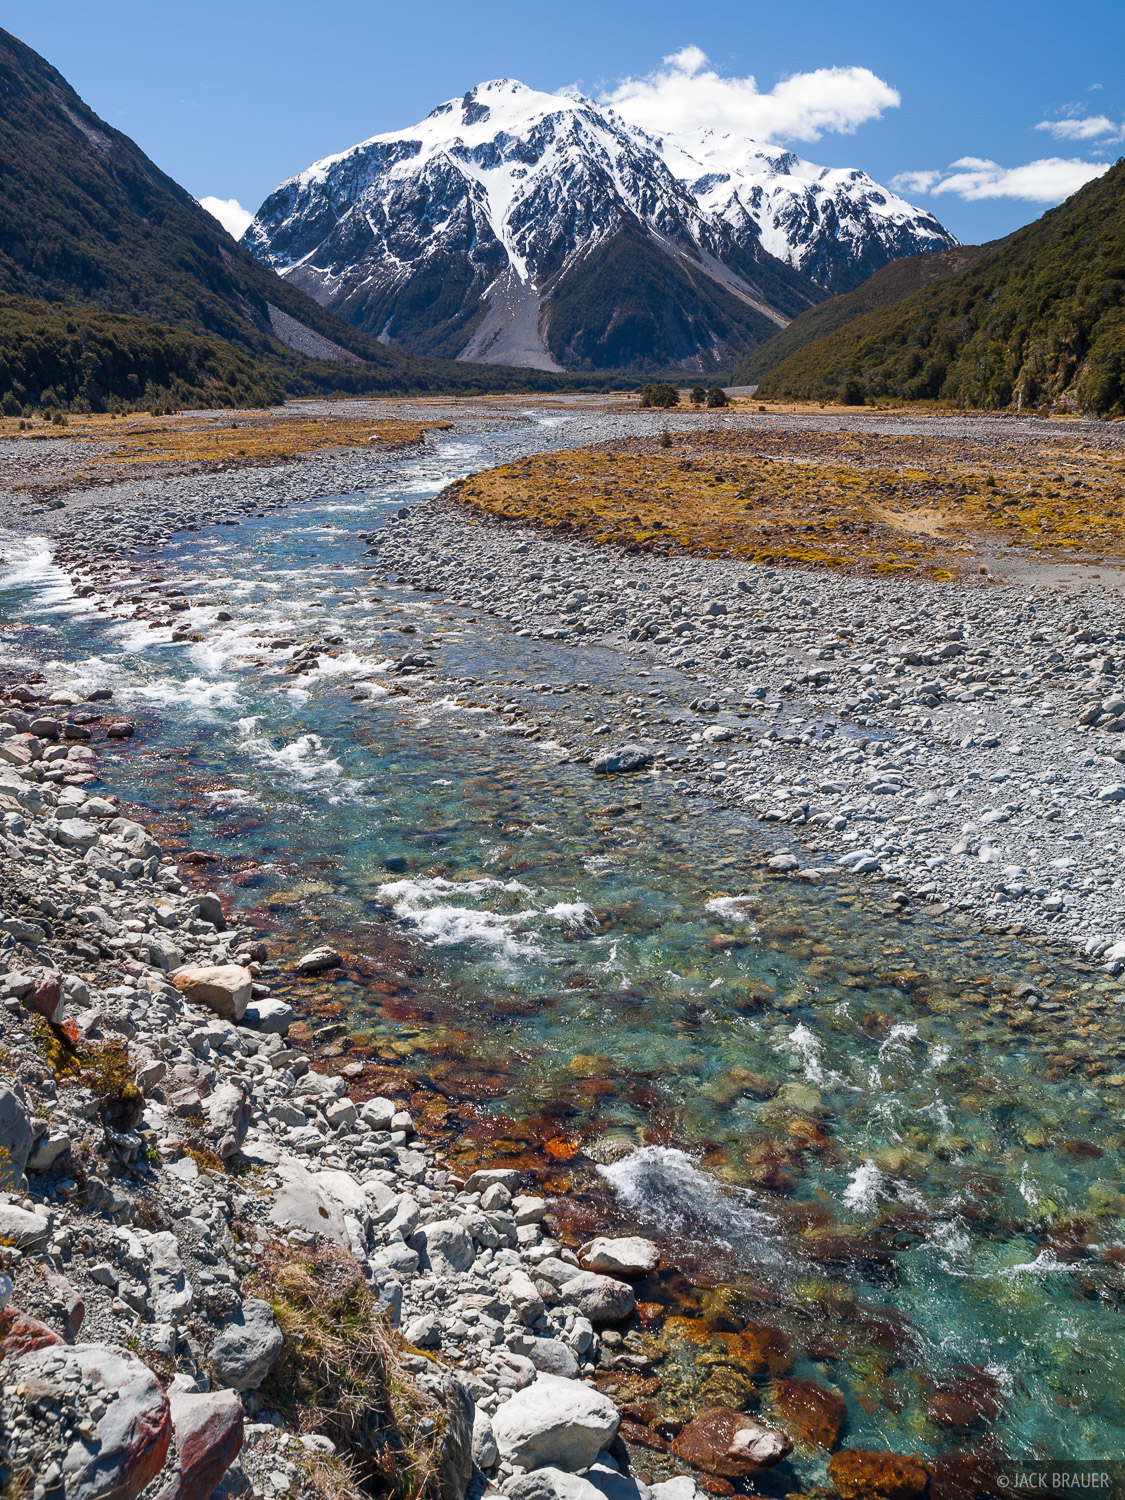 New Zealand, Arthurs Pass National Park, Waimakariri River, photo